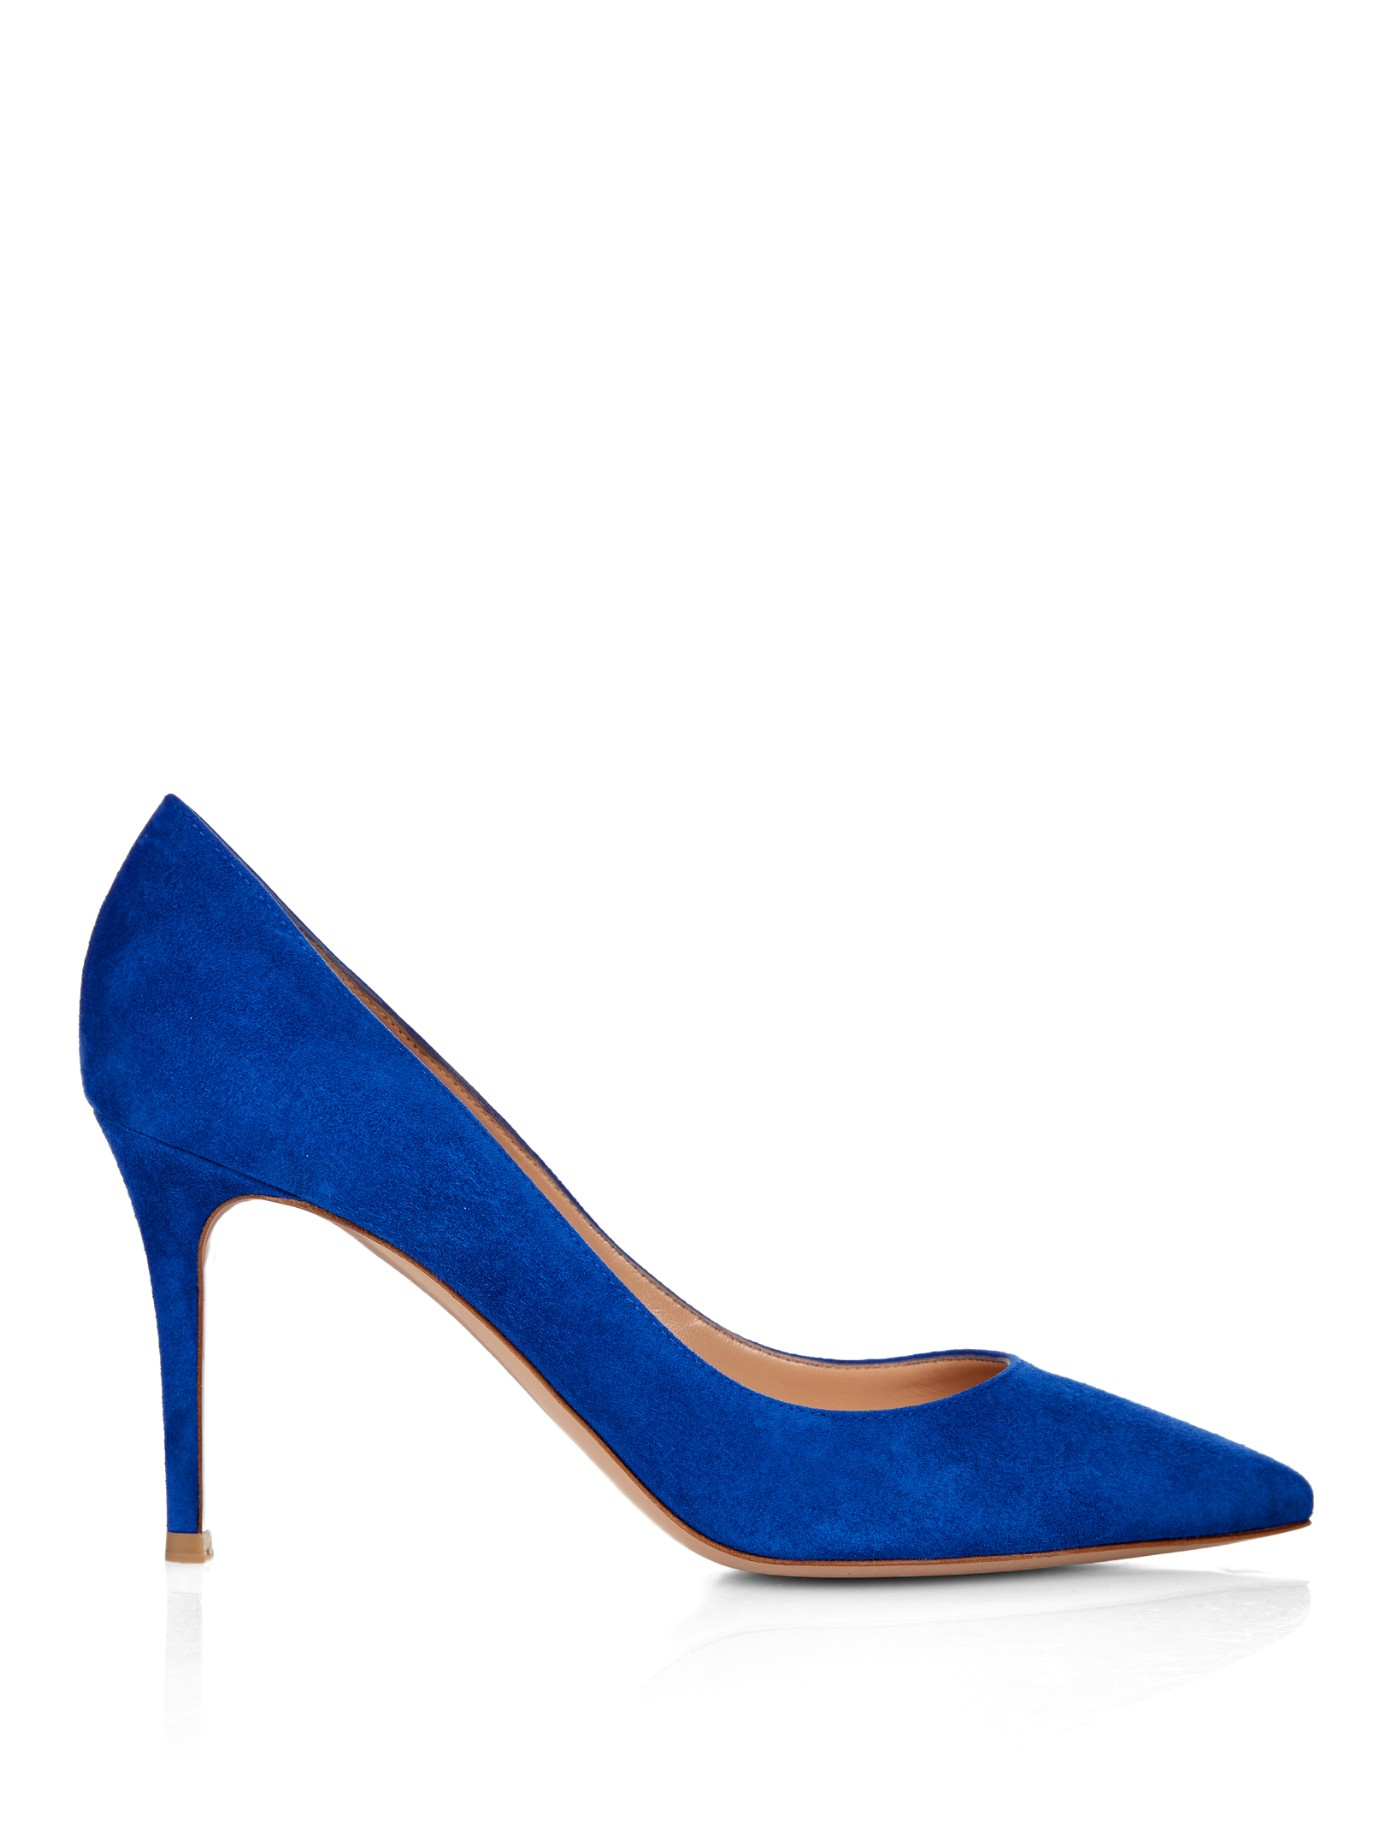 Gianvito Rossi Business Suede Pumps in